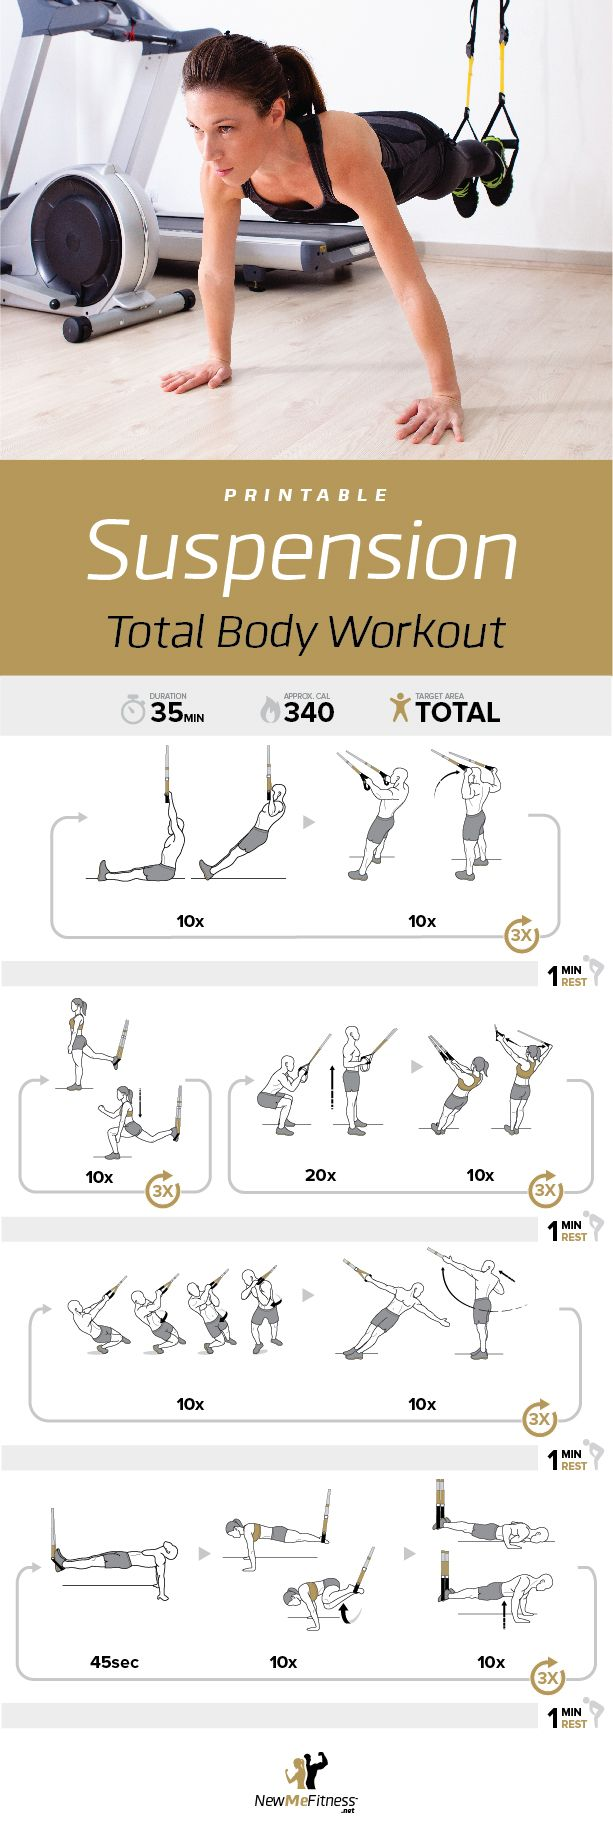 TRX Total Body Workout   Posted By: AdvancedWeightLossTips.com